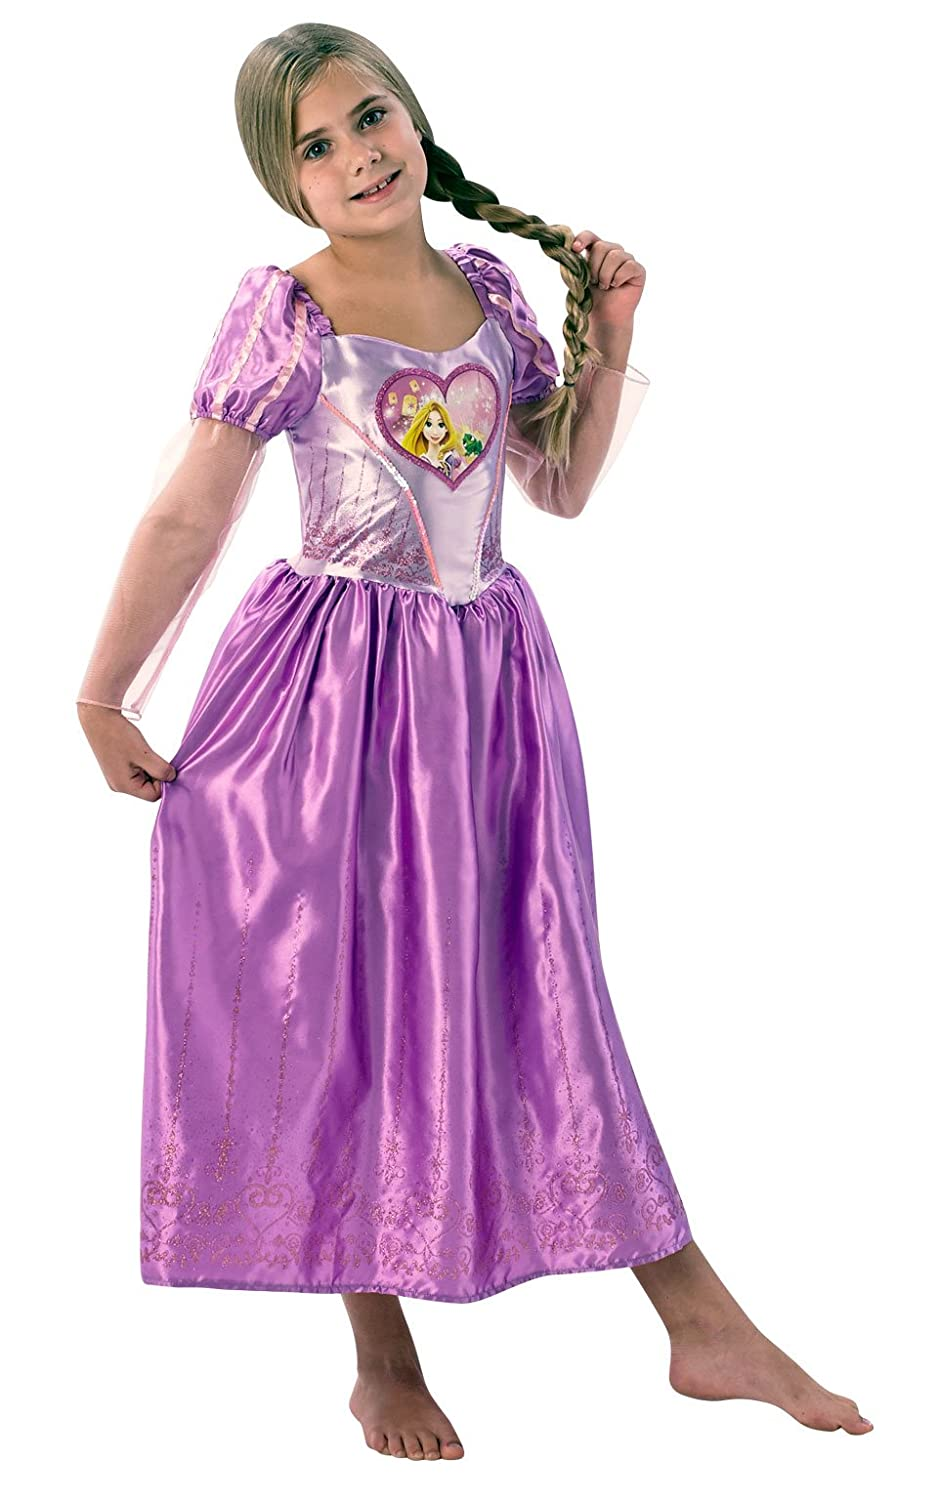 Rubie´s Loveheart Rapunzel Girls Fancy Dress Disney Fairytale Kids Childs Costume Outfit Amazon.co.uk Toys u0026 Games  sc 1 st  Amazon UK & Rubie´s Loveheart Rapunzel Girls Fancy Dress Disney Fairytale Kids ...